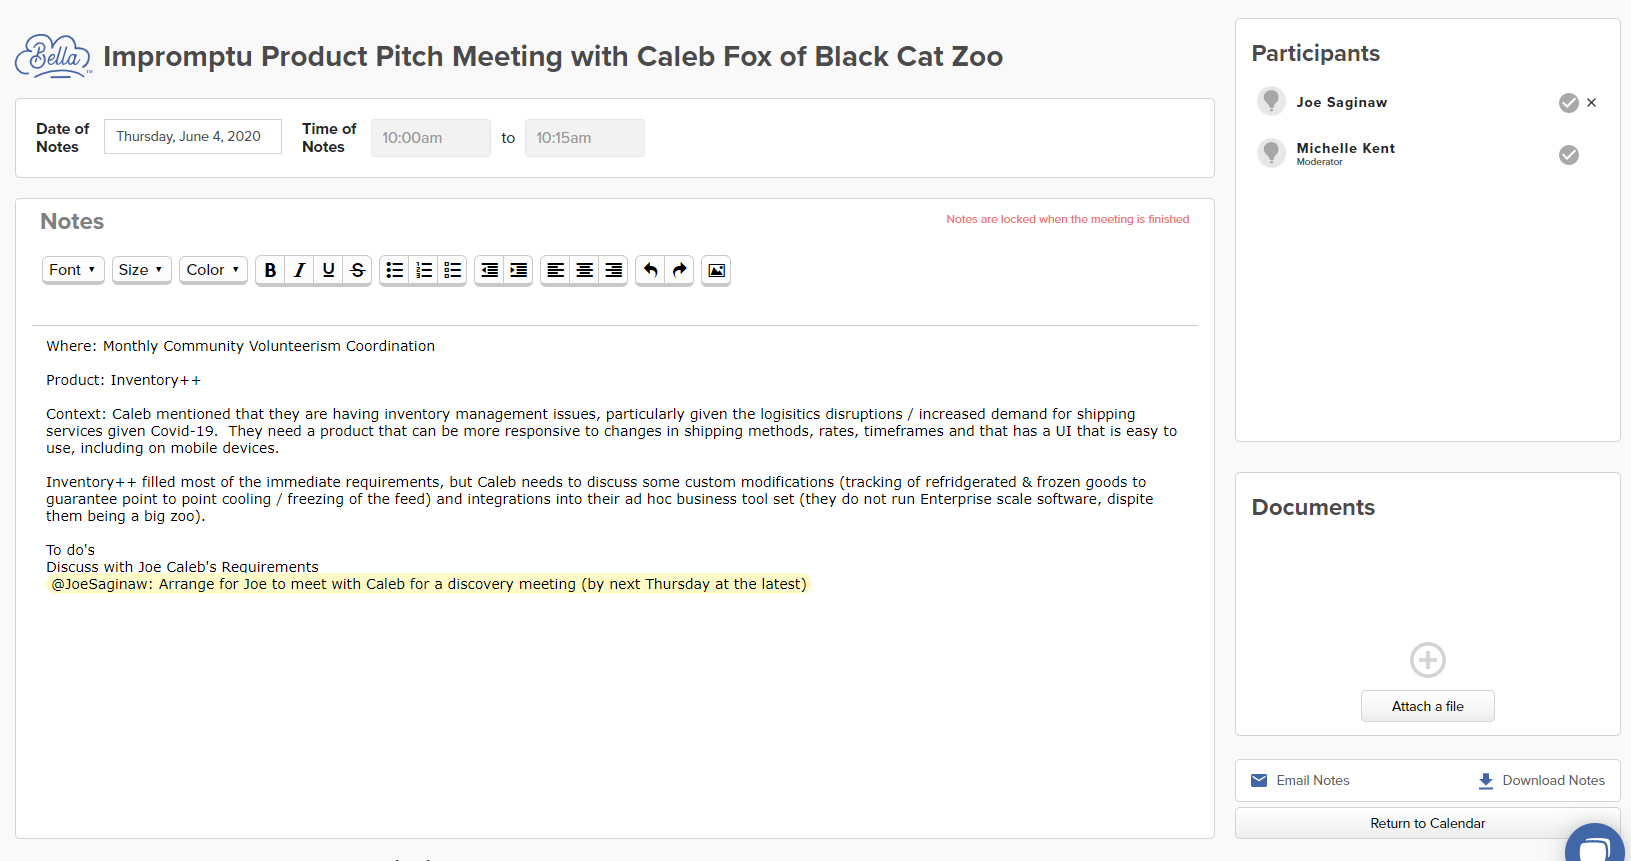 We've added a new feature we would like to share- emailing out meeting notes. Check out this post for how it works.